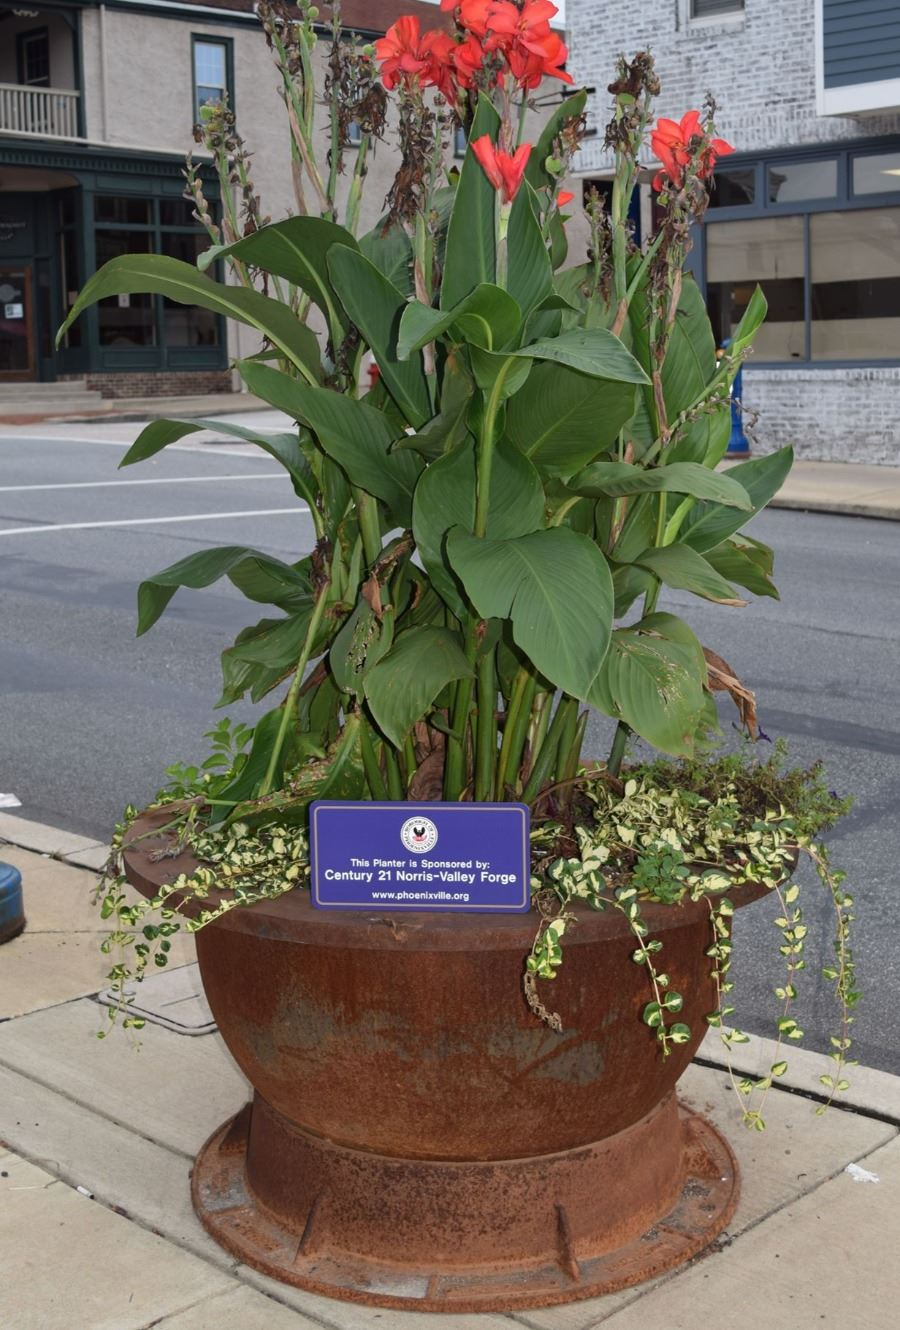 Century 21 Norris-Valley Forge Planter